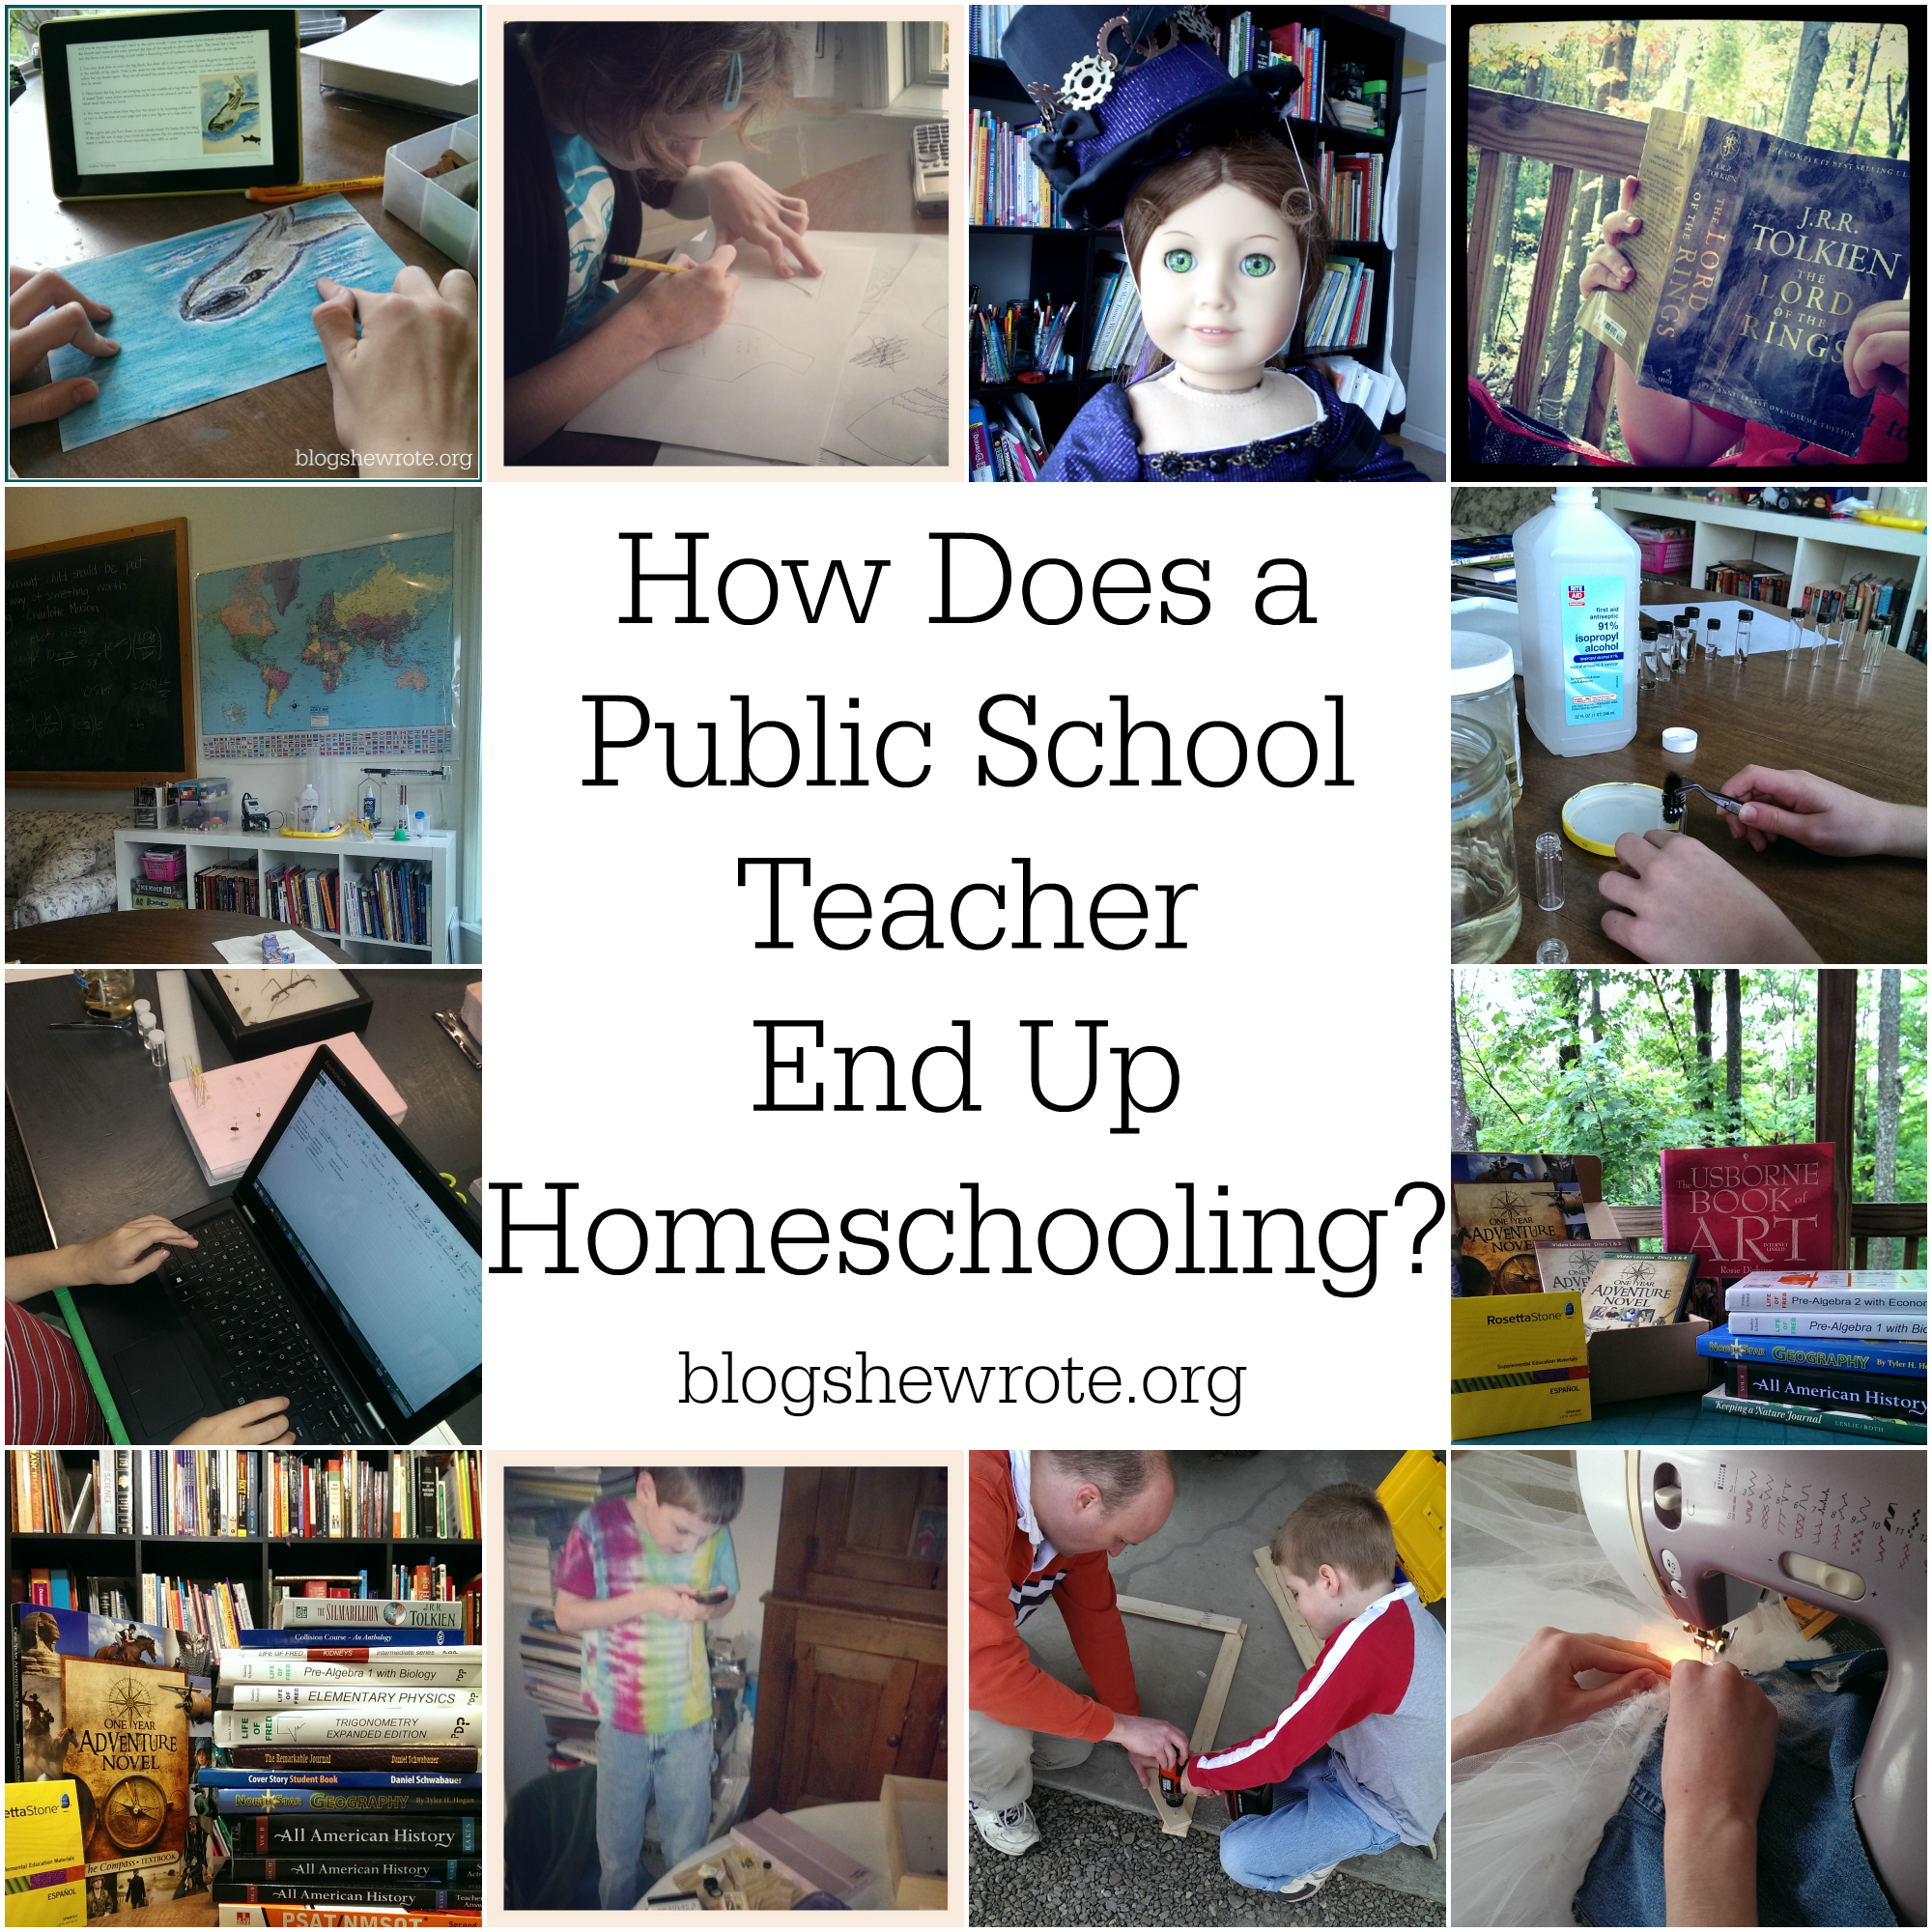 Blog, She Wrote: How Does a Public School Teacher End Up Homeschooling ...